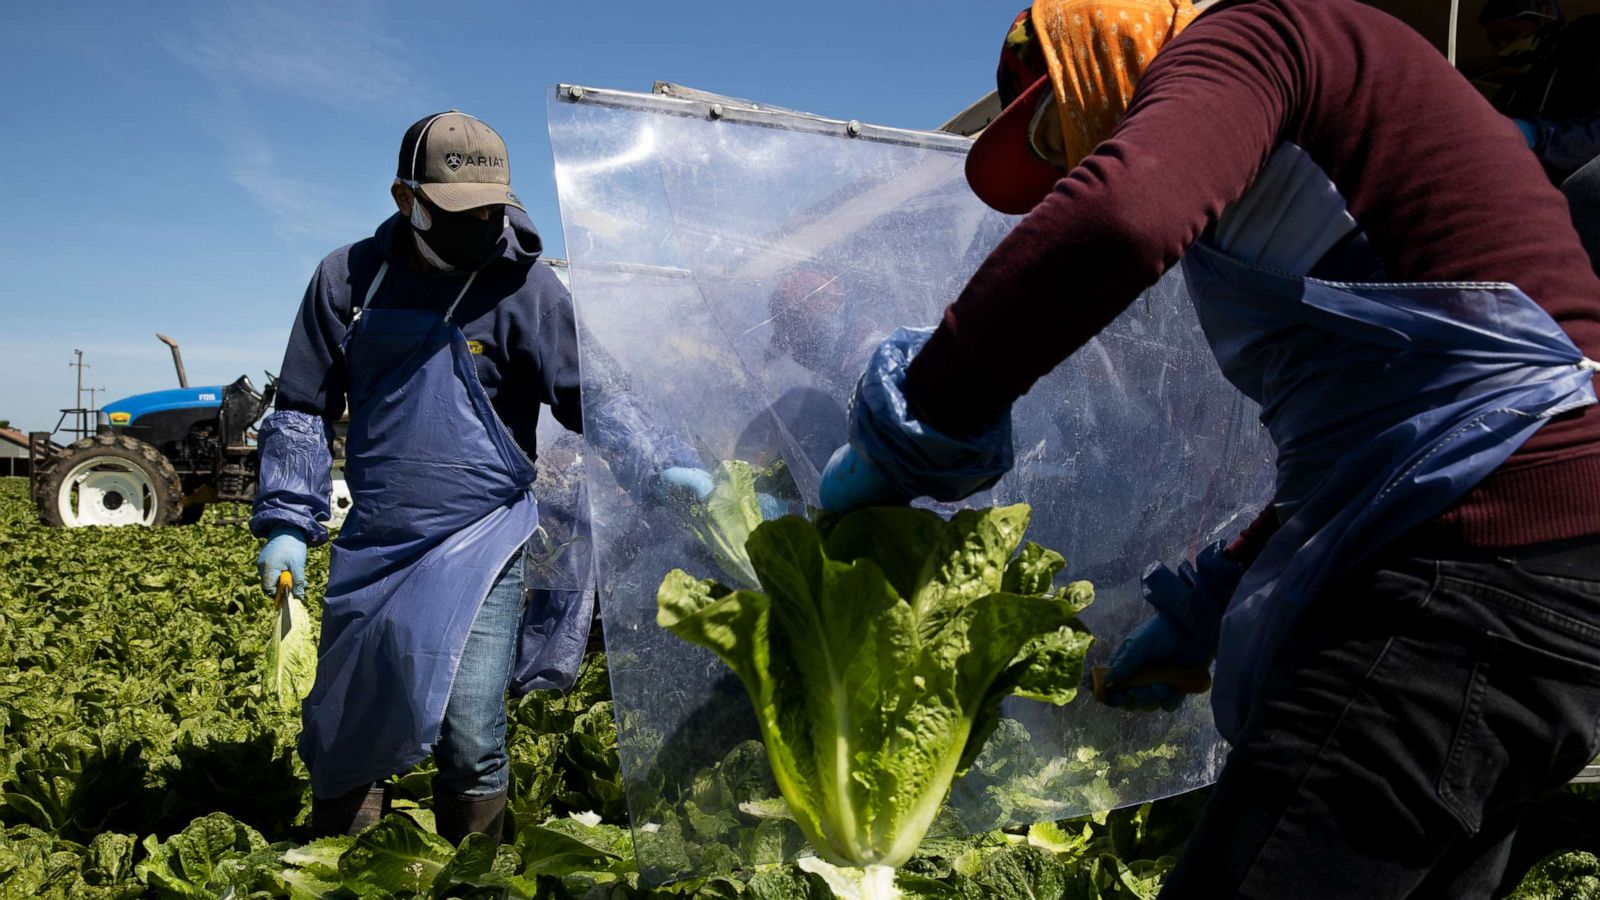 Essential Farmworkers Risk Covid 19 Exposure To Maintain Food Supply Abc News